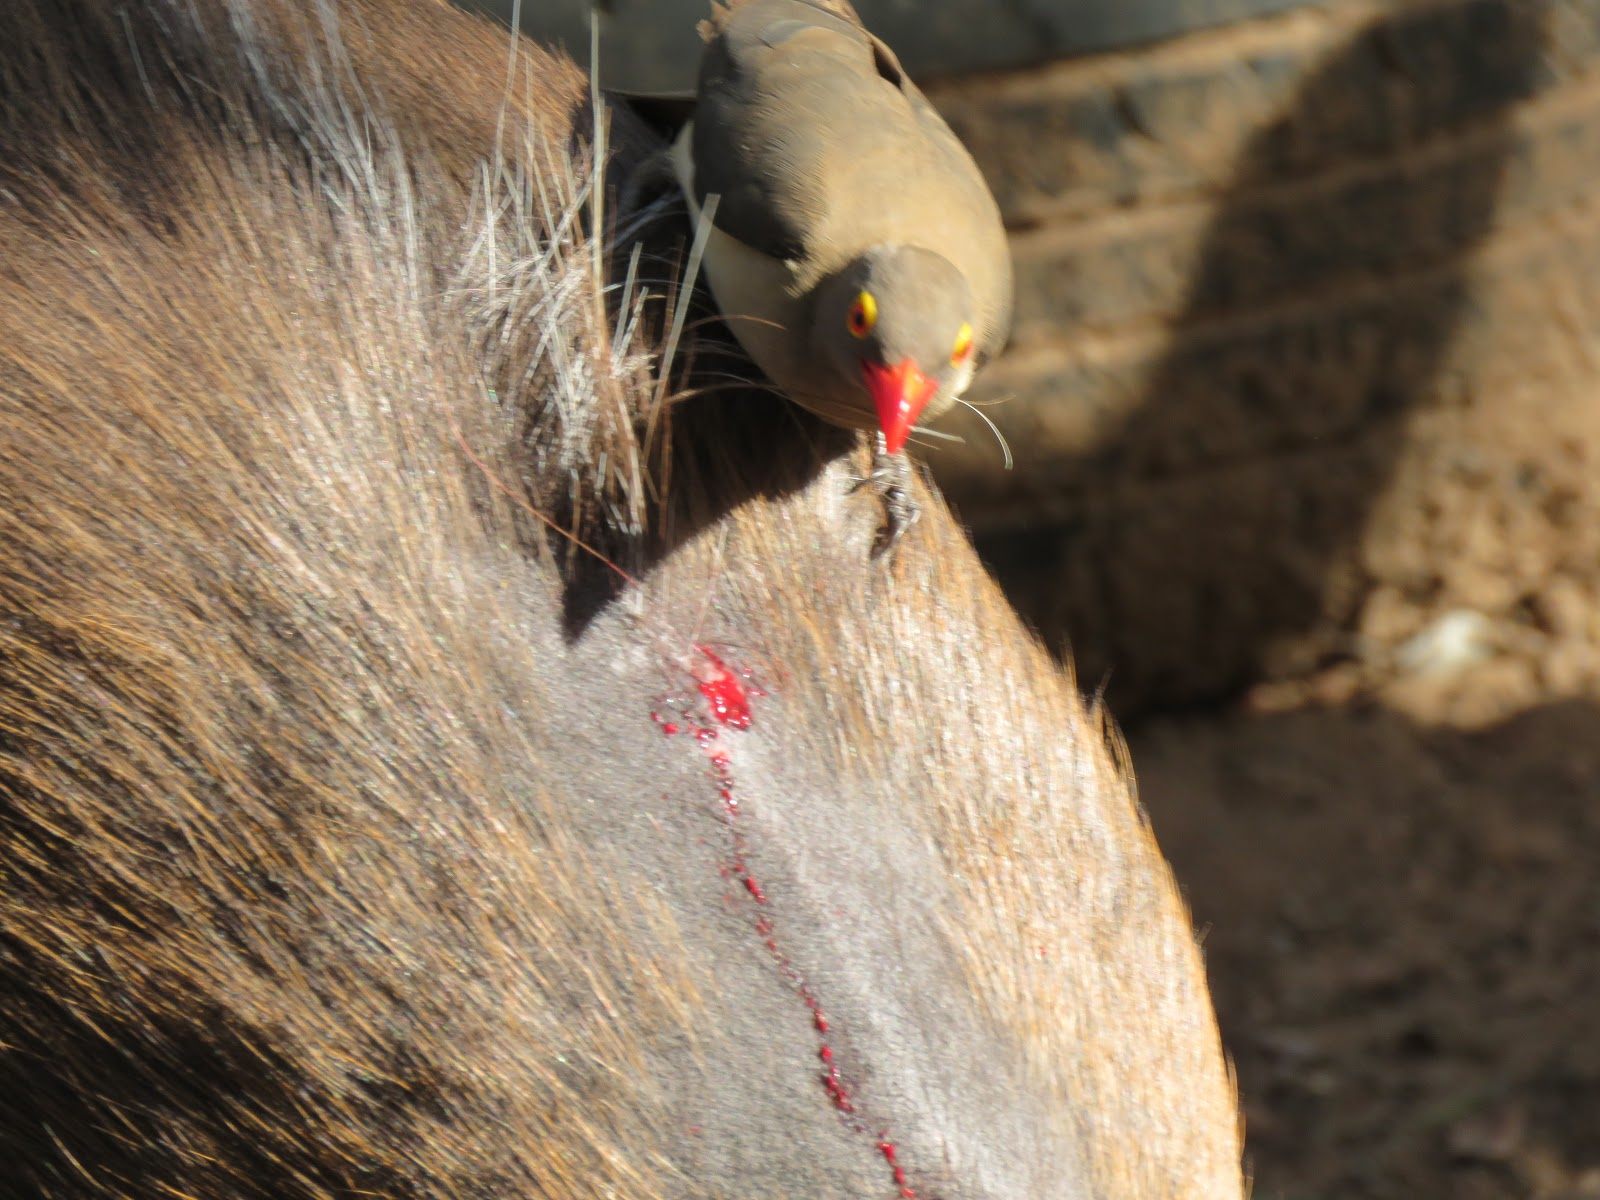 Oxpeckers can dig into the flesh of animals to extract parasites